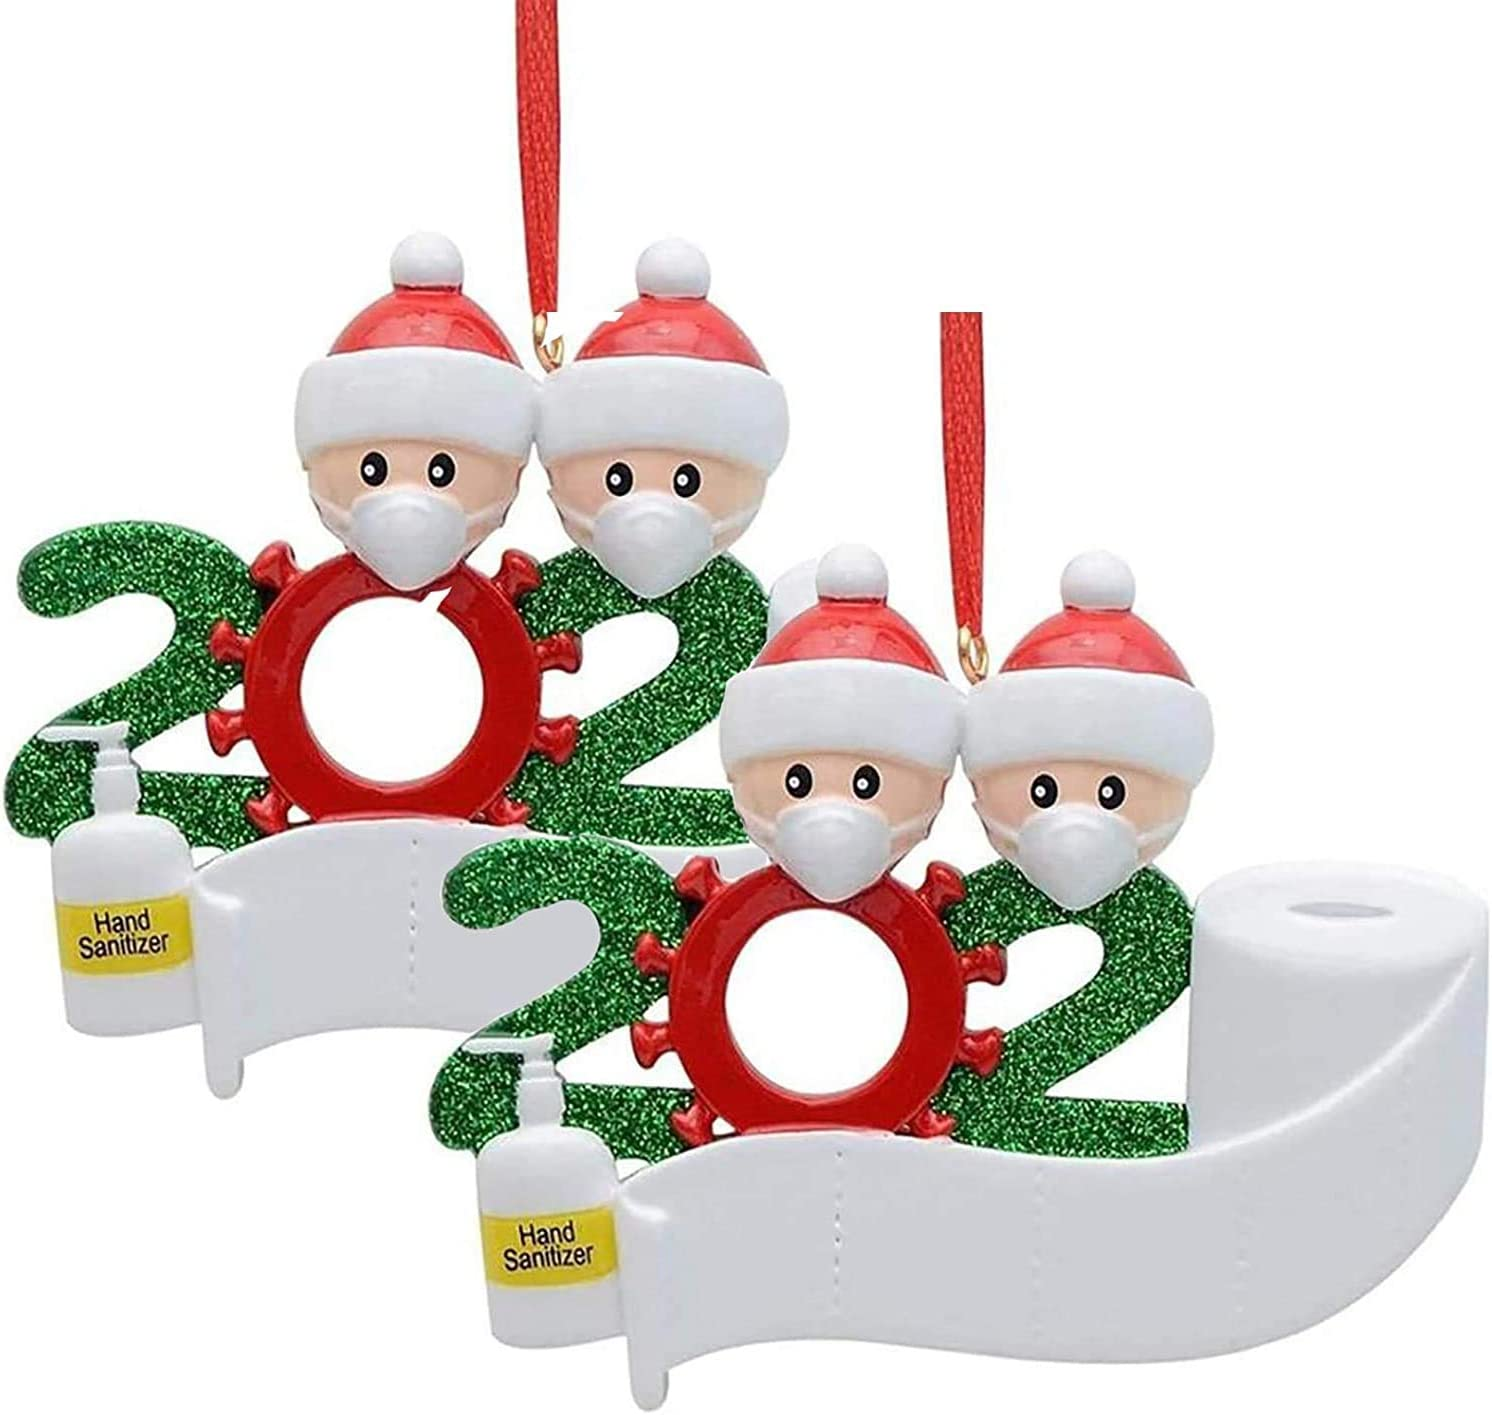 2020 Personalized Christmas Ornaments Kit, Newest Theme DIY Name 2 Family Members Creative Gift Christmas Decorations for Home Indoor Outdoor Christmas Decor (2 Packs)